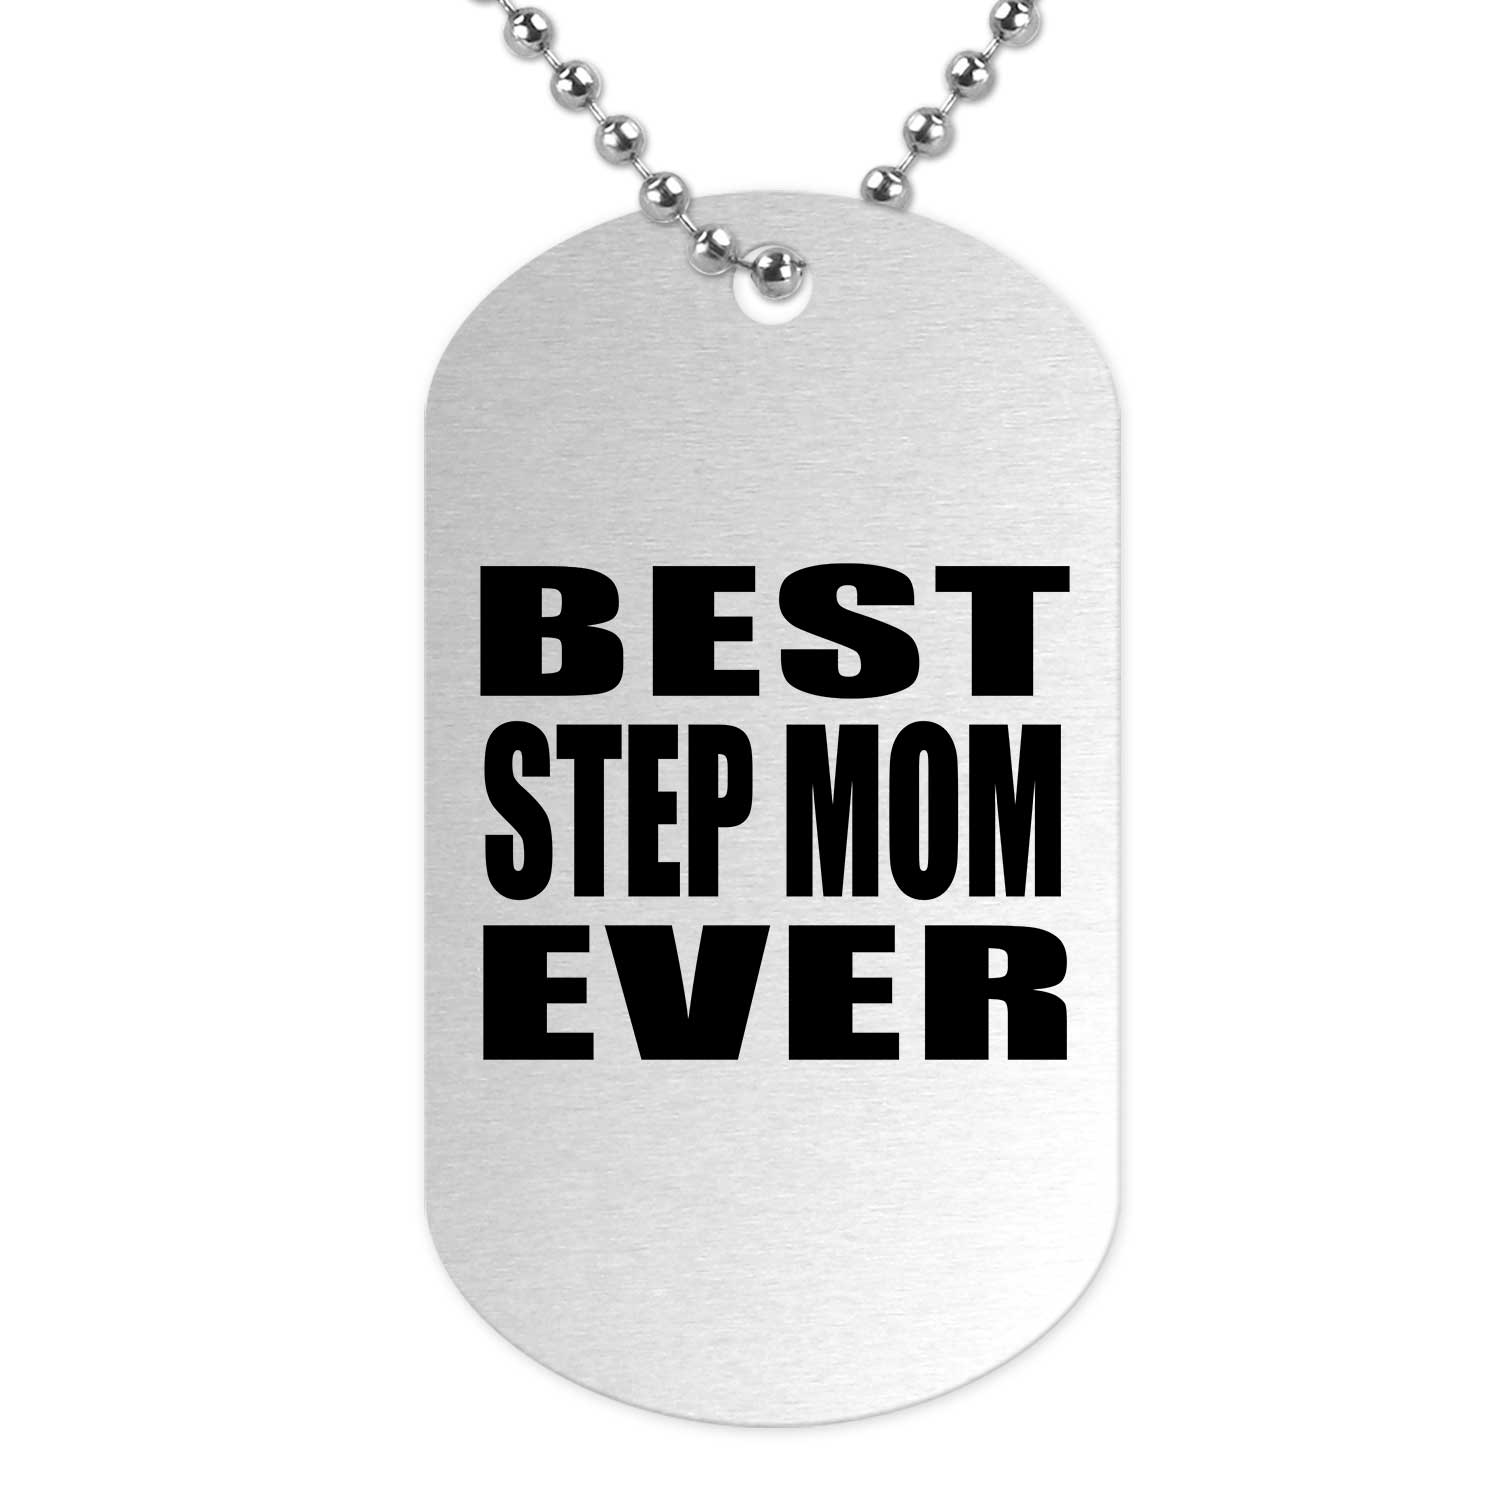 Best Step Mom Ever - Military Dog Tag